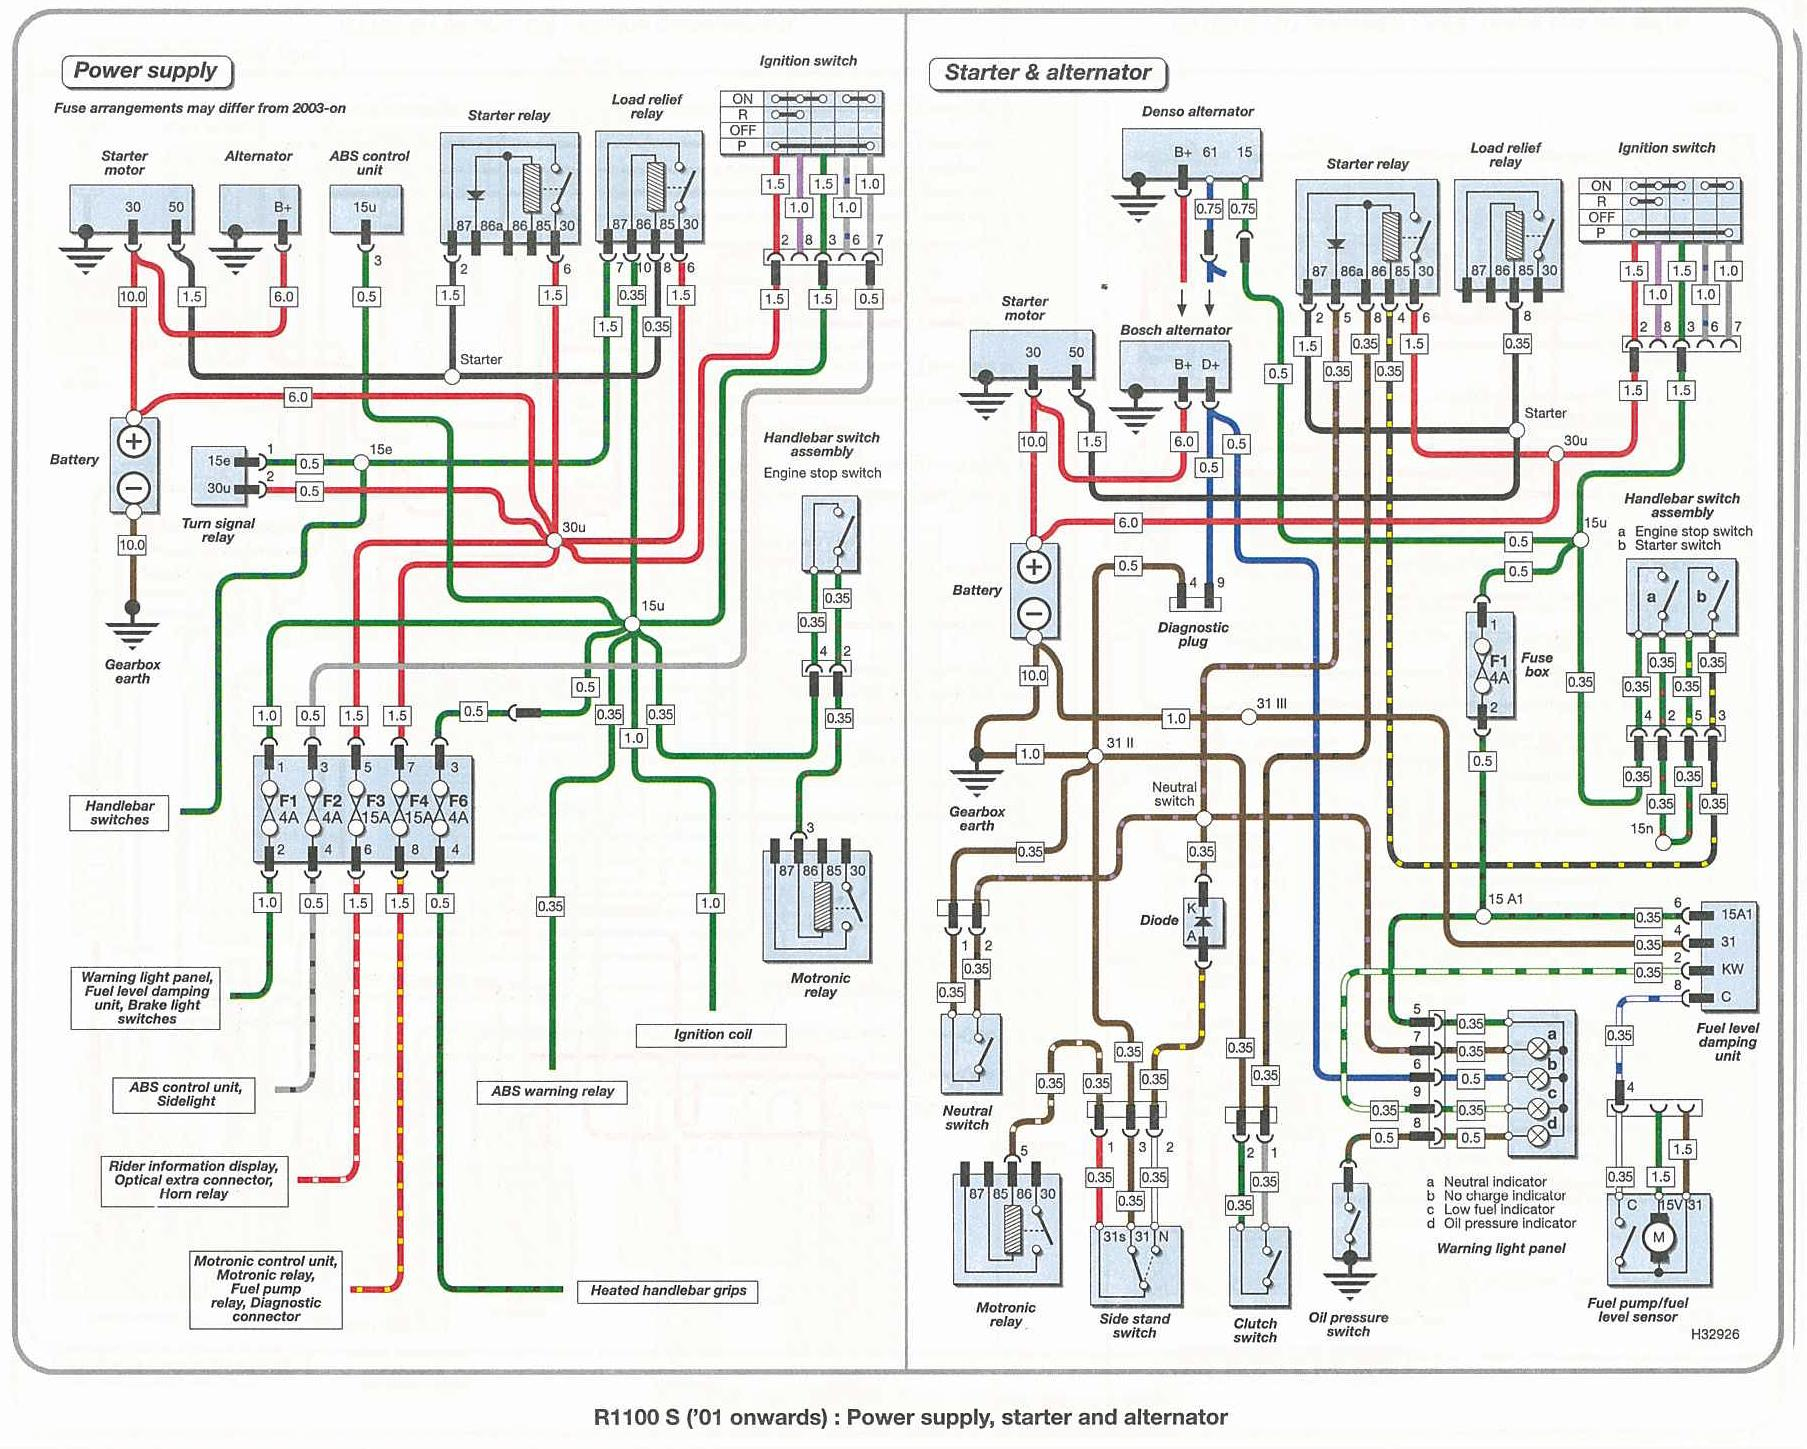 1976 Bmw 02 Wiring Diagram - Wiring Diagrams Hubs - Bmw Wiring Diagram